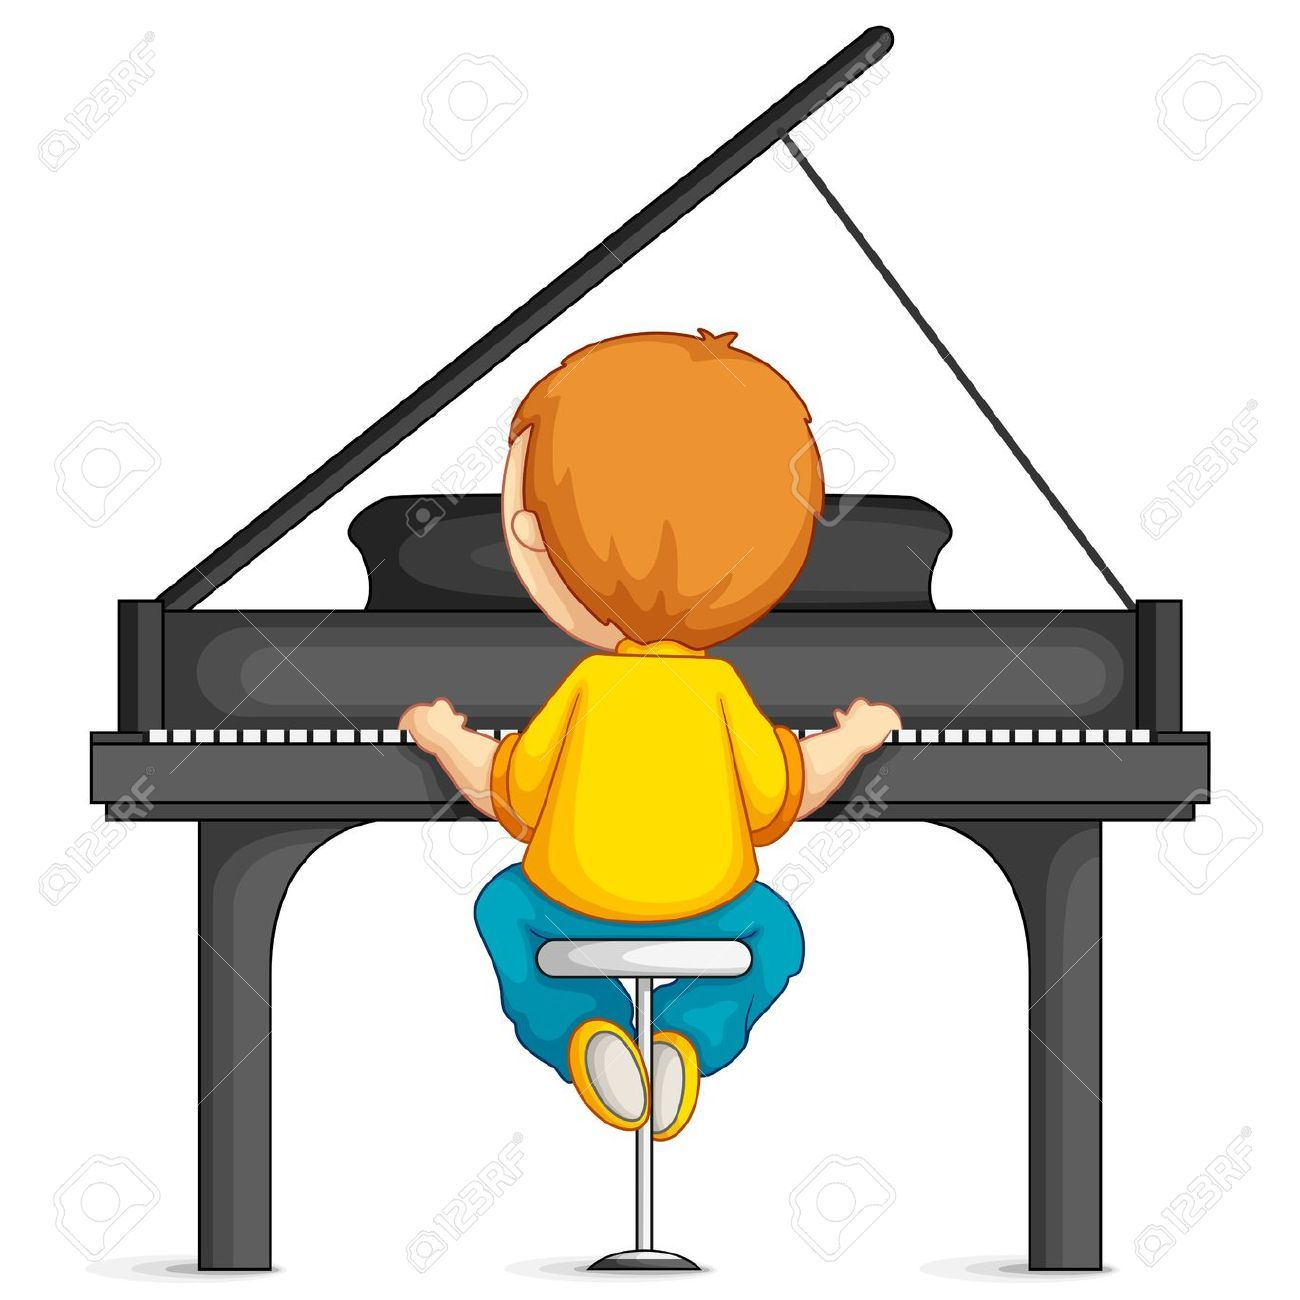 Playing piano clipart jpg Playing piano clipart 4 » Clipart Portal jpg